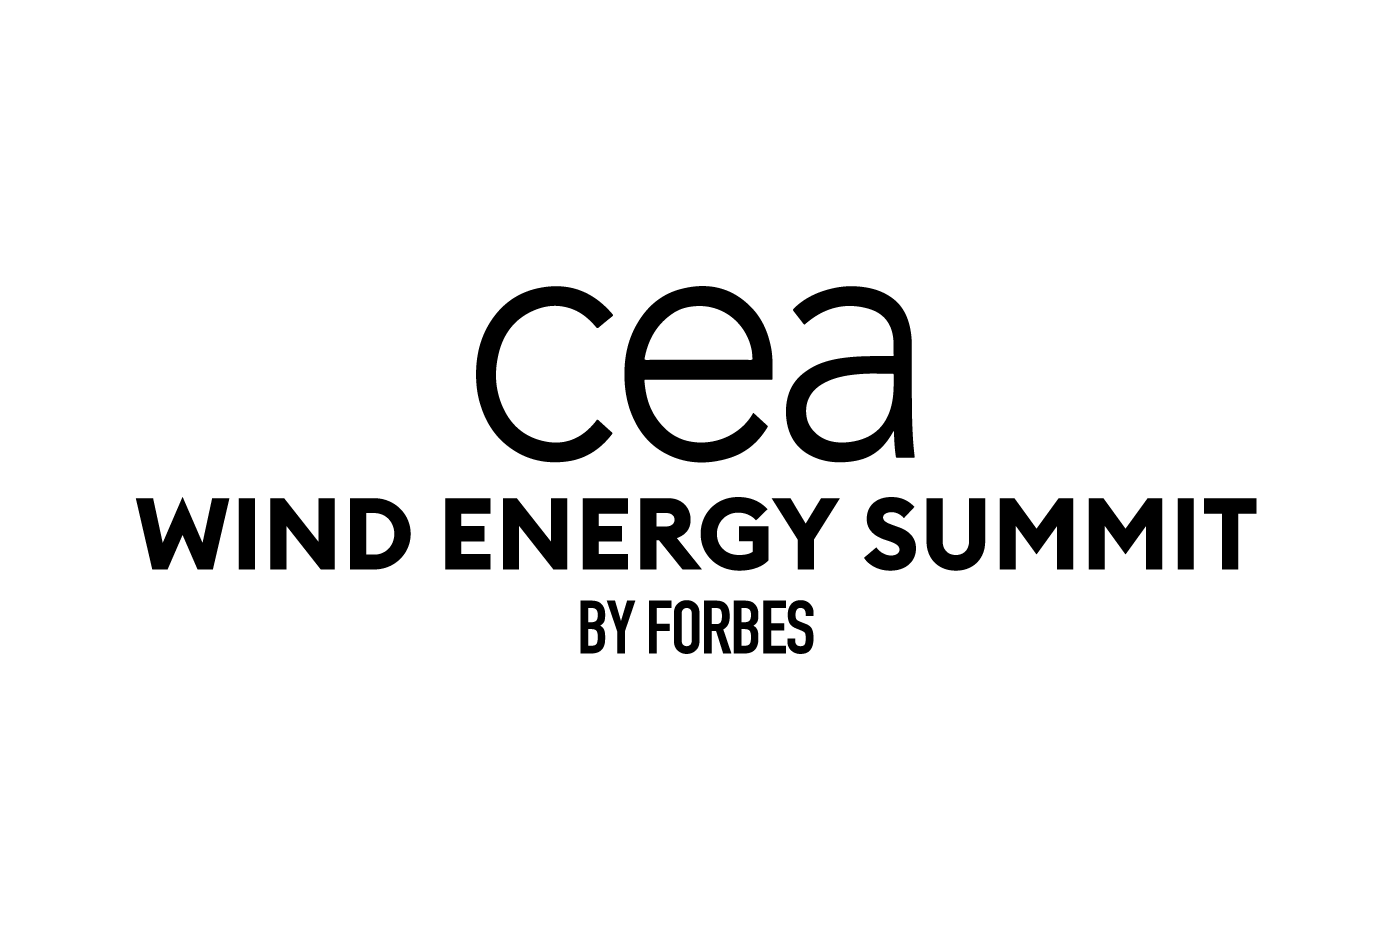 CEA WIND ENERGY SUMMIT